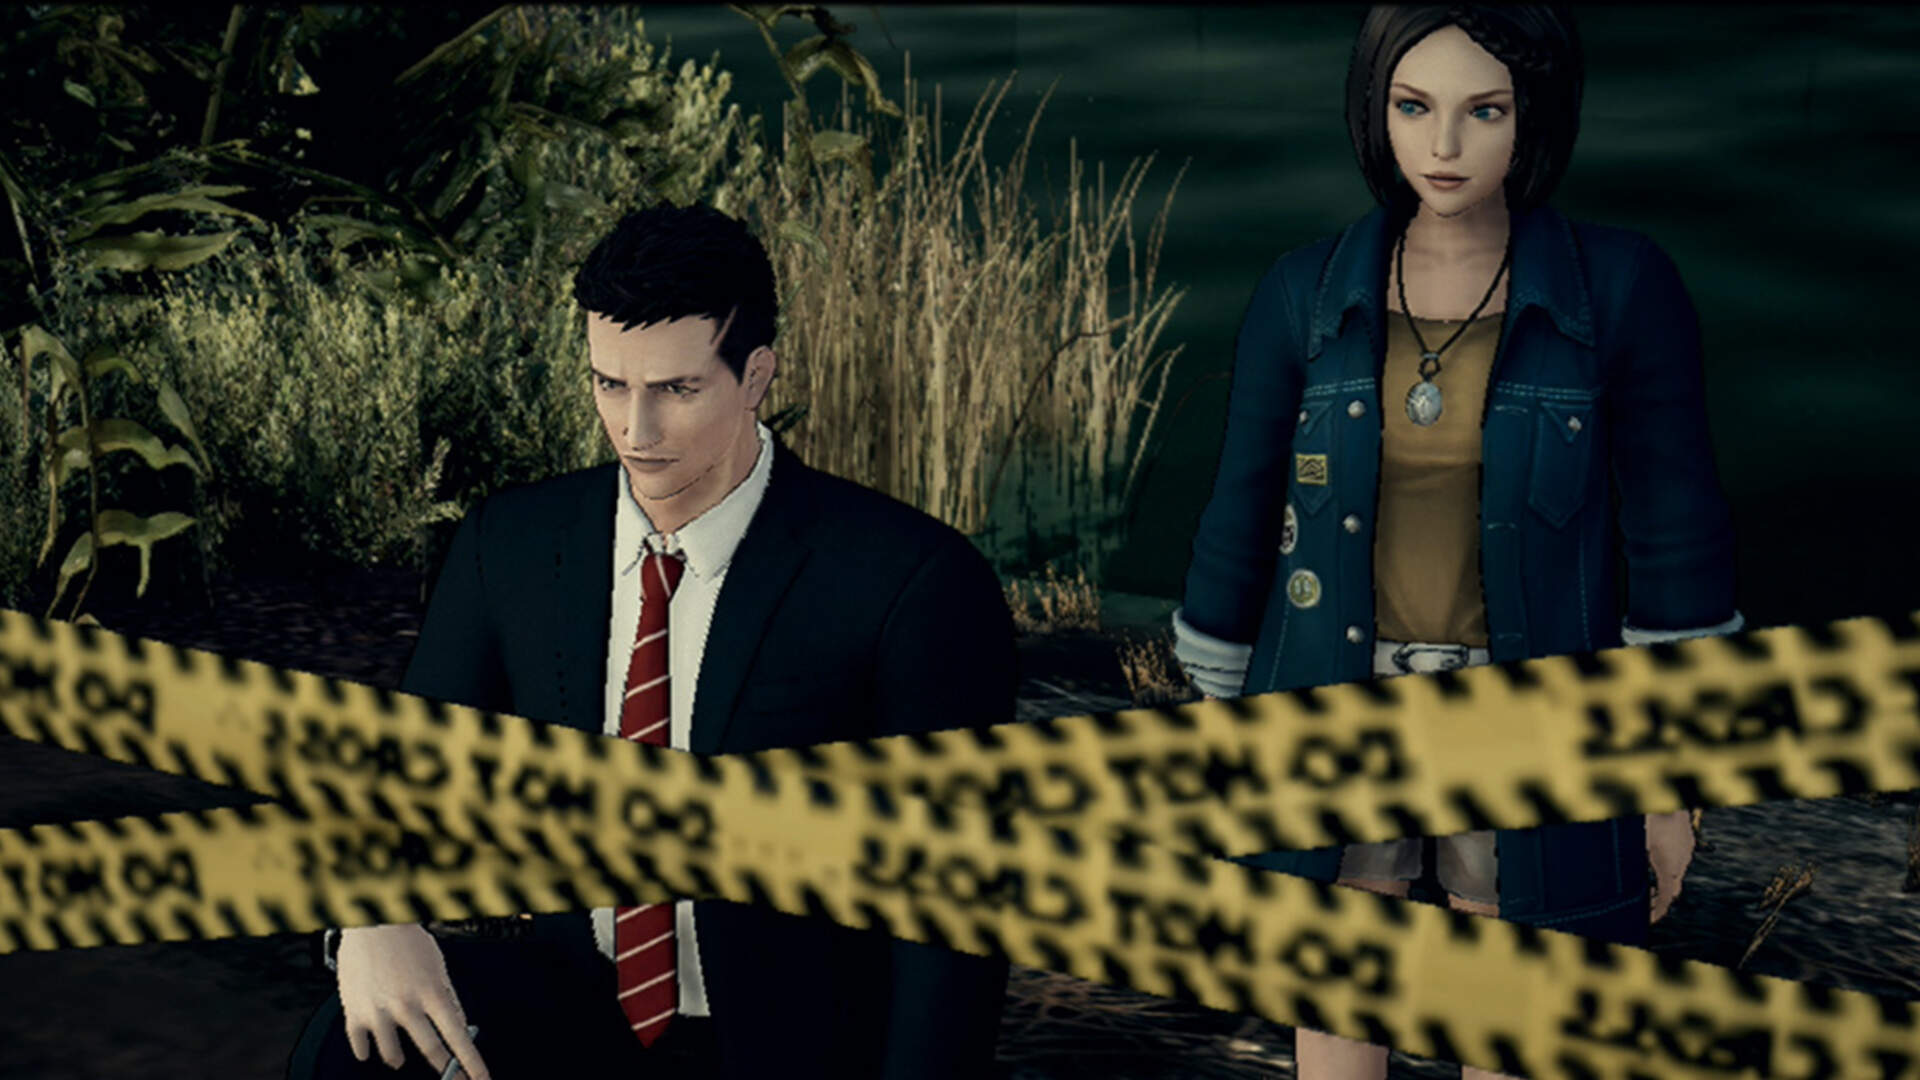 Deadly Premonition 2: A Blessing in Disguise Releases in July